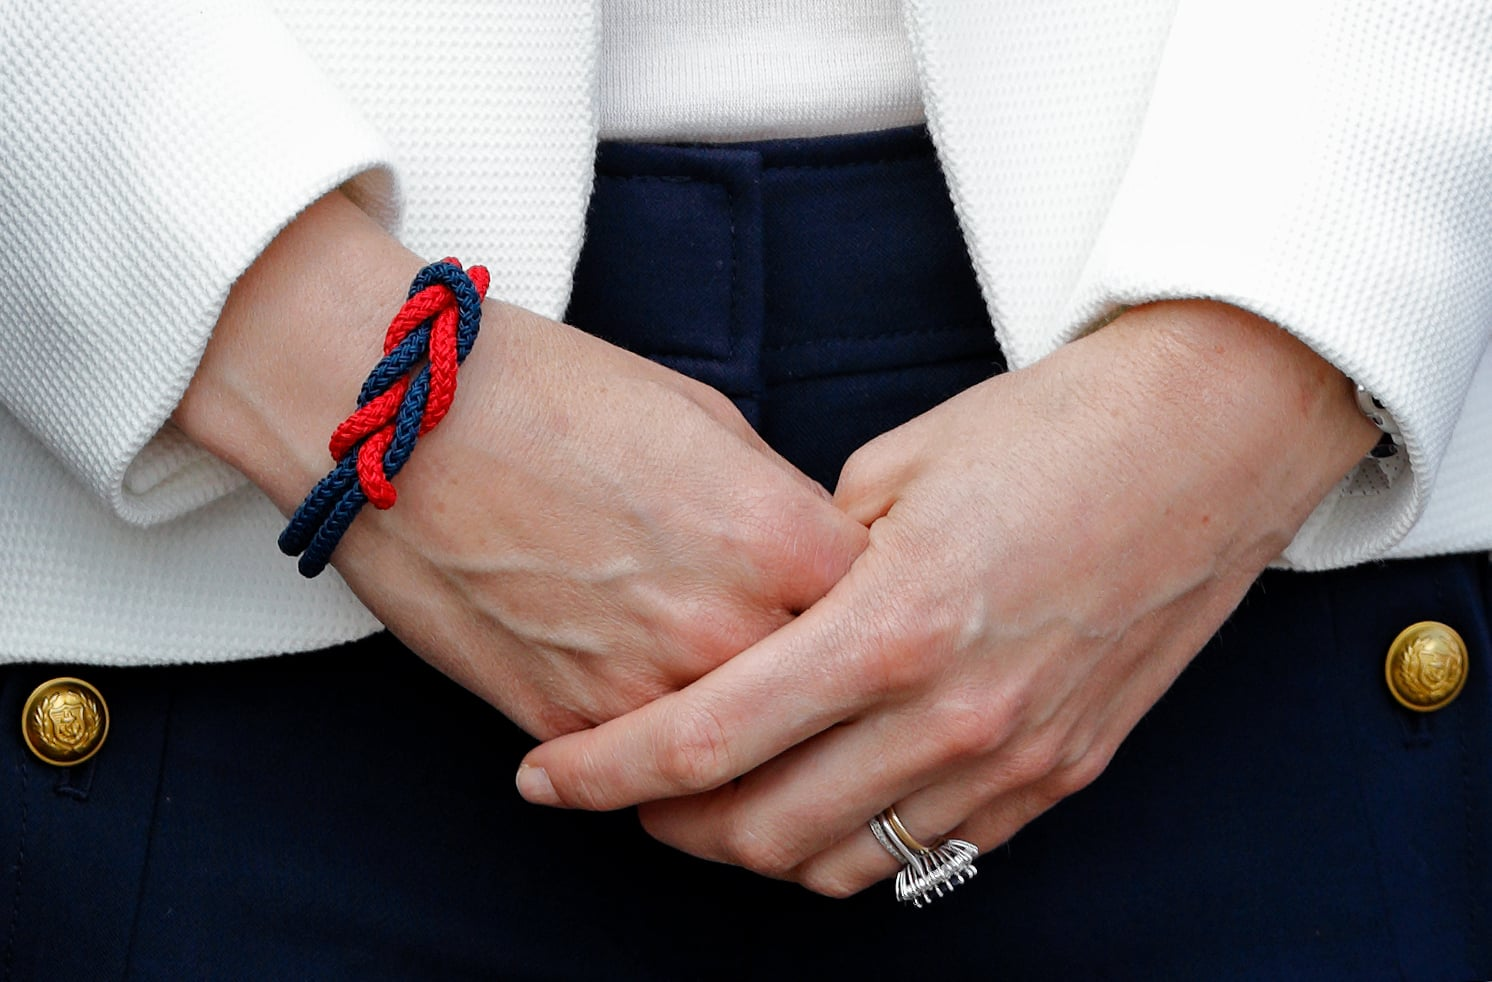 LONDON, UNITED KINGDOM - JUNE 16: (EMBARGOED FOR PUBLICATION IN UK NEWSPAPERS UNTIL 48 HOURS AFTER CREATE DATE AND TIME) Catherine, Duchess of Cambridge (bracelet detail) visits the 1851 Trust roadshow at the Docklands Sailing and Watersports Centre on June 16, 2017 in London, England. The 1851 Trust (of which The Duchess of Cambridge is Patron) is the official charity of Land Rover Ben Ainslie Racing, the British America's Cup team. (Photo by Max Mumby/Indigo/Getty Images)